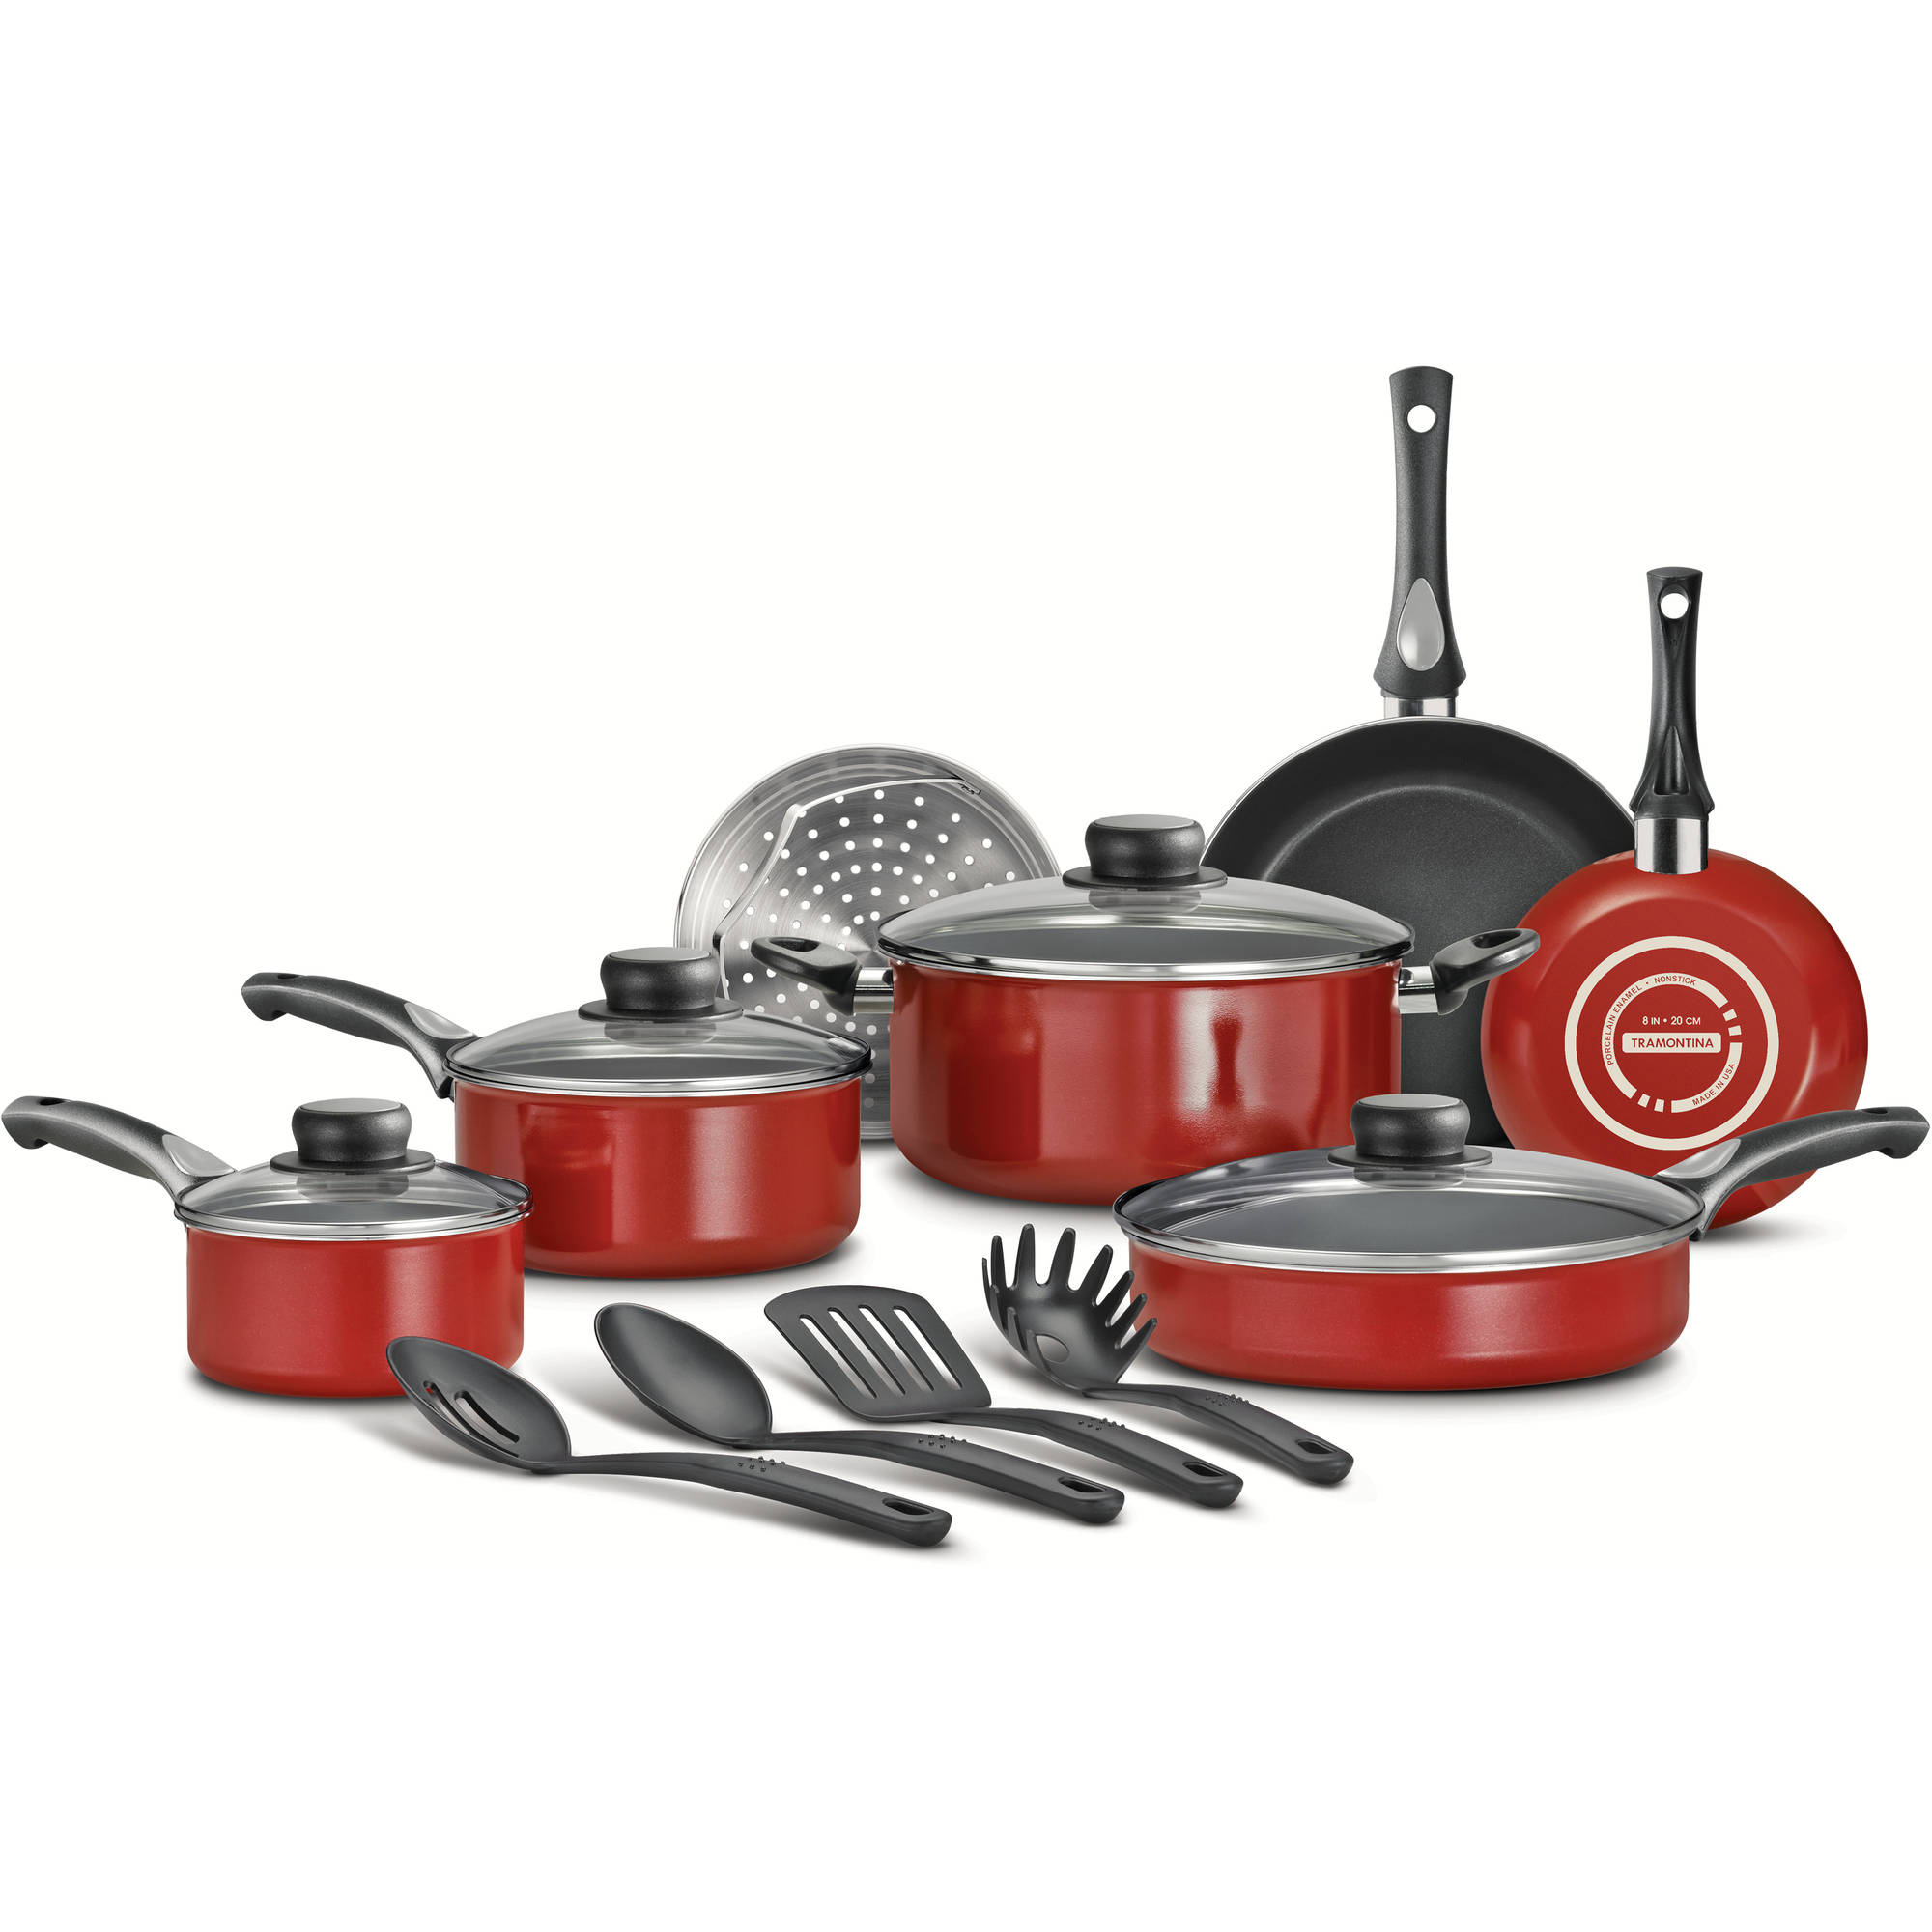 Tramontina 15-Piece Select Non-Stick Cookware Set, Cayenne Red